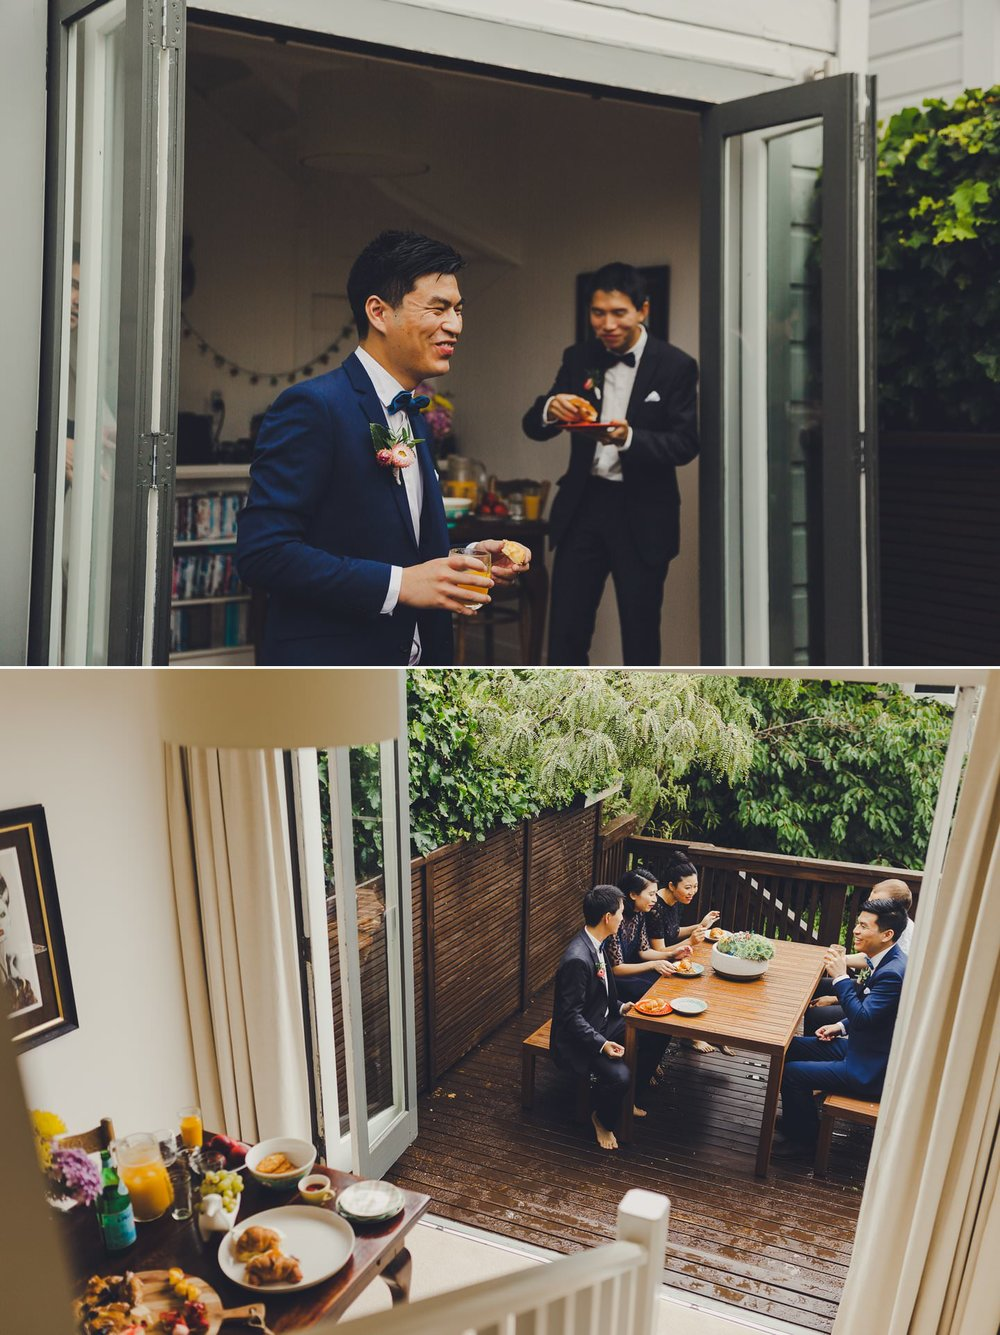 Groom having wedding day brunch with his family on their deck in New Zealand